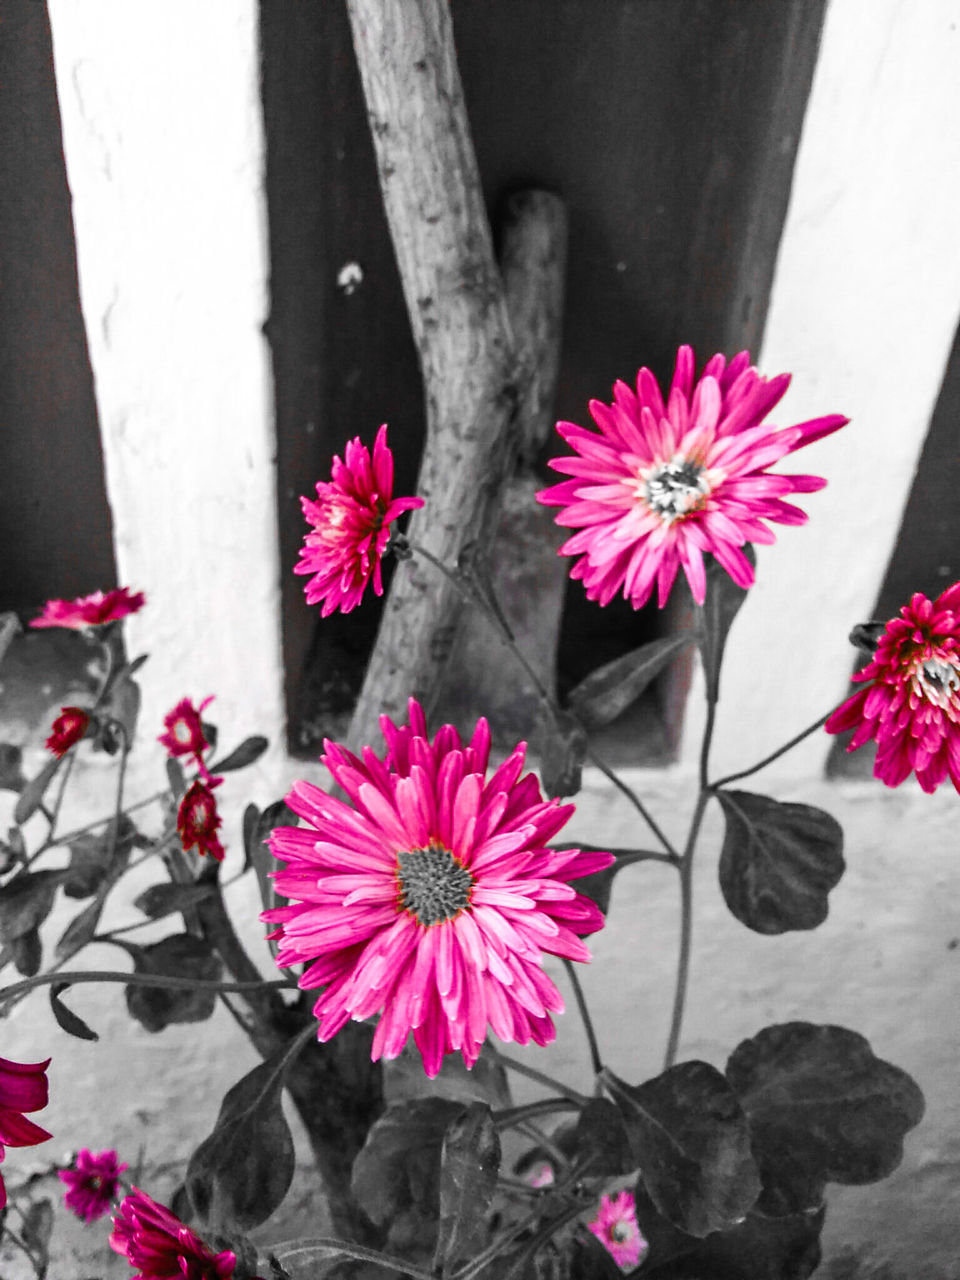 flower, fragility, growth, nature, petal, beauty in nature, freshness, outdoors, no people, plant, blooming, day, close-up, pink color, flower head, petunia